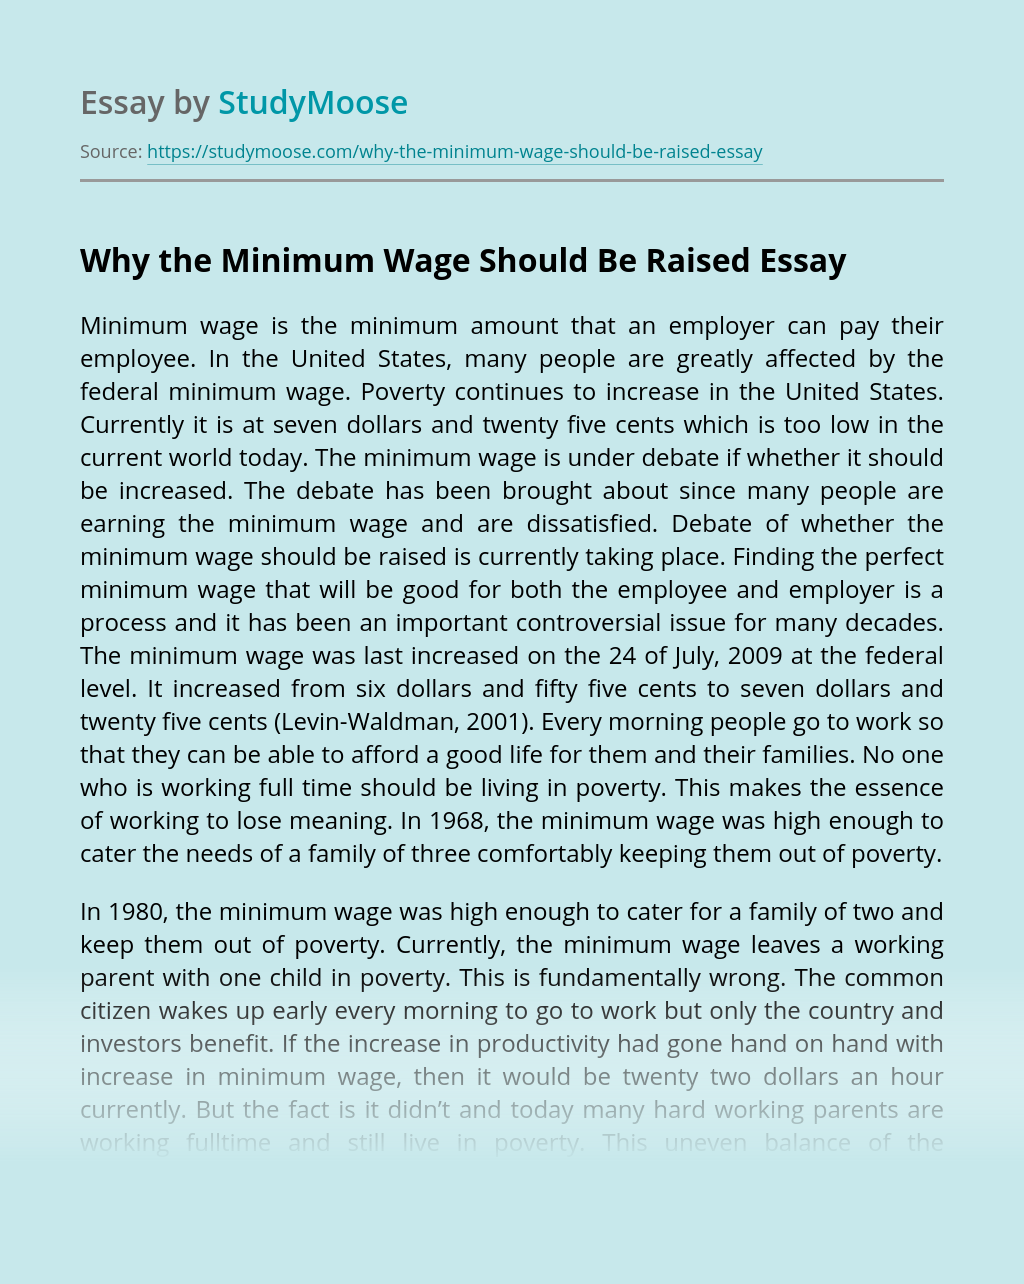 Why the Minimum Wage Should Be Raised